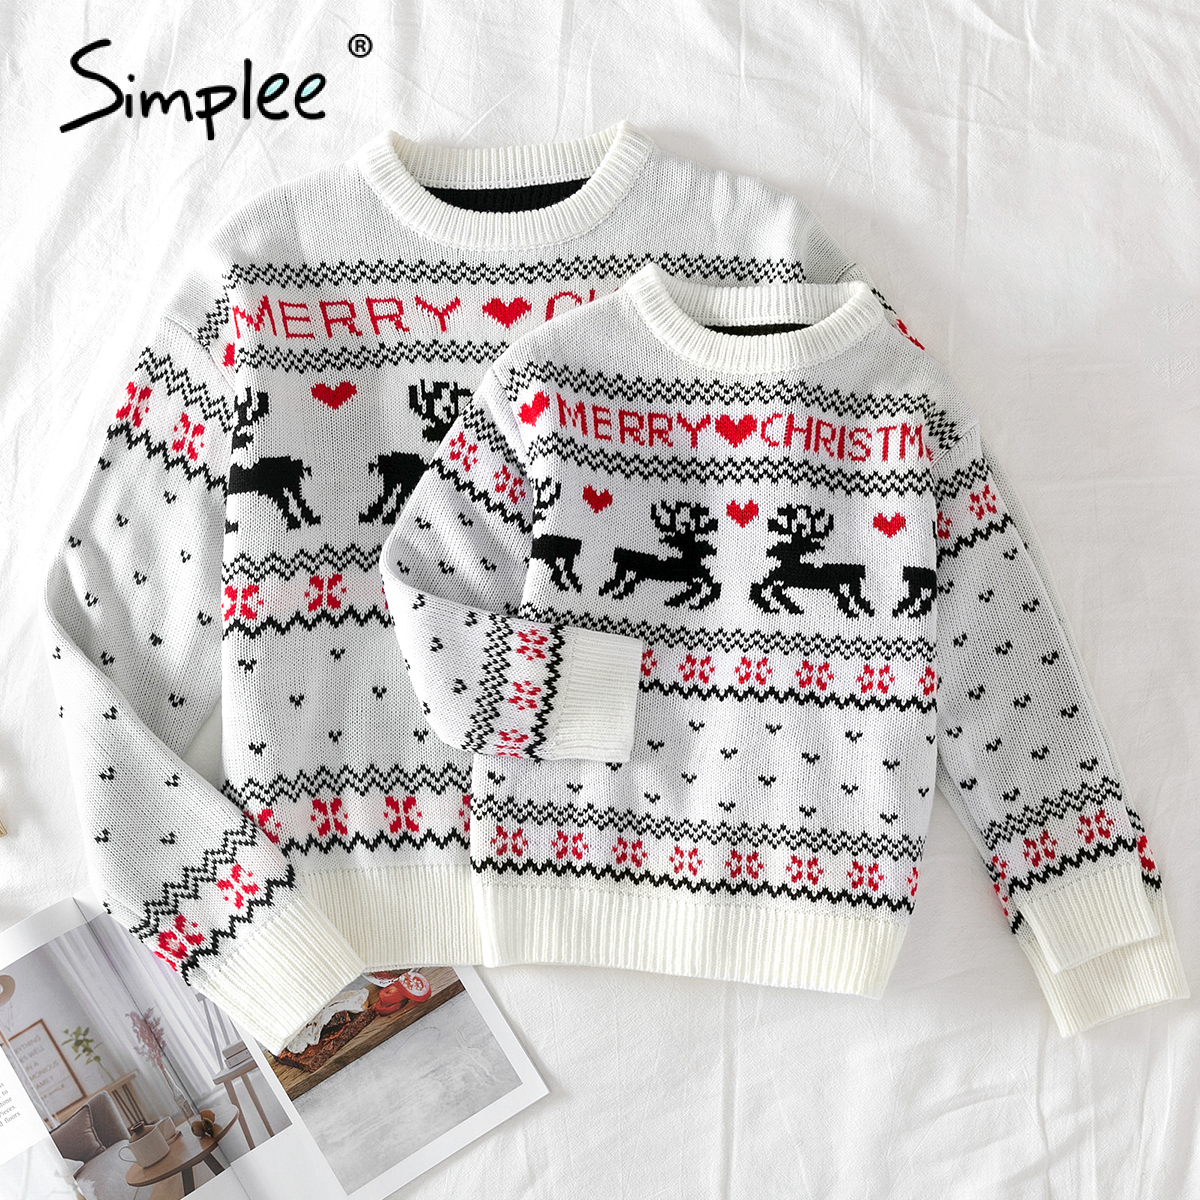 Simplee O-neck Christmas Sweater Family matching outfits Autumn winter Christmas deer print knitted pullovers 2020 New year